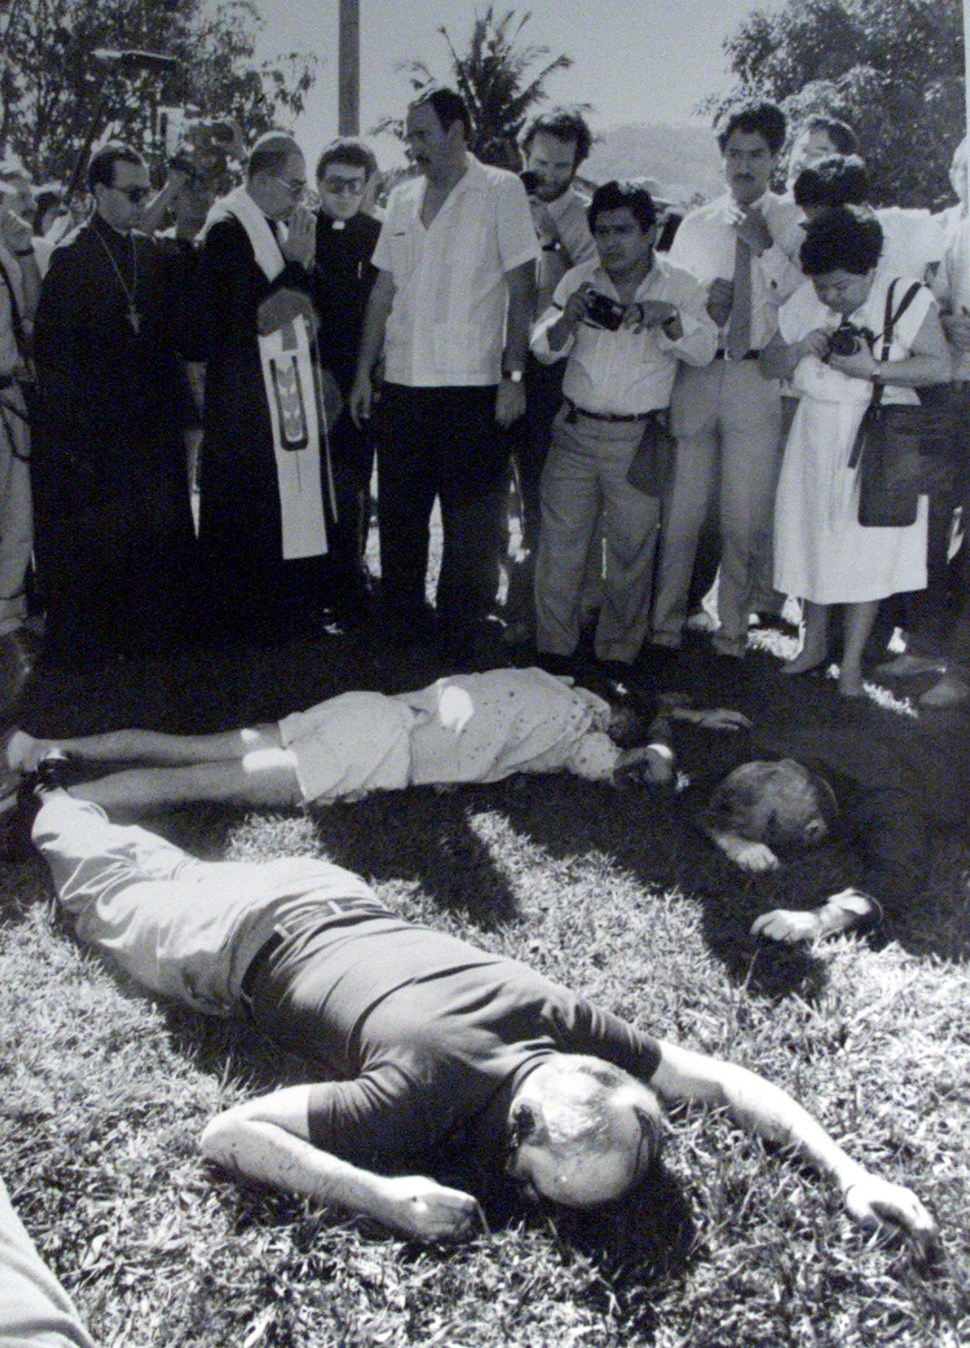 File photo showing part of the scene where six Jesuit priests and two assistants were assassinated on November 16, 1989 in San Salvador.